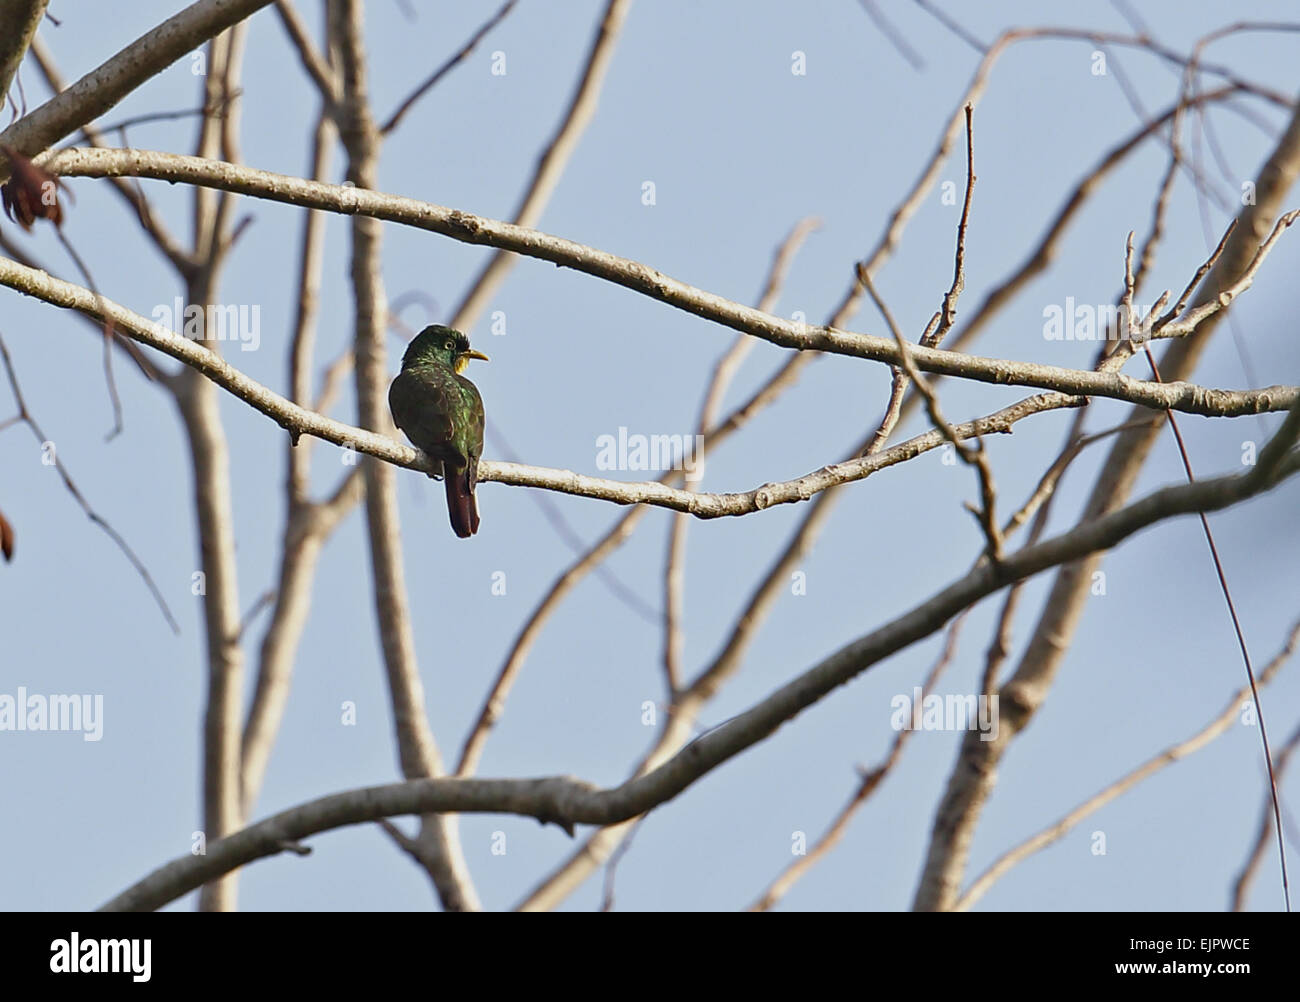 Yellow-throated Cuckoo (Chrysococcyx flavigularis) adult male, perched on branch, Atewa, Ghana, February - Stock Image